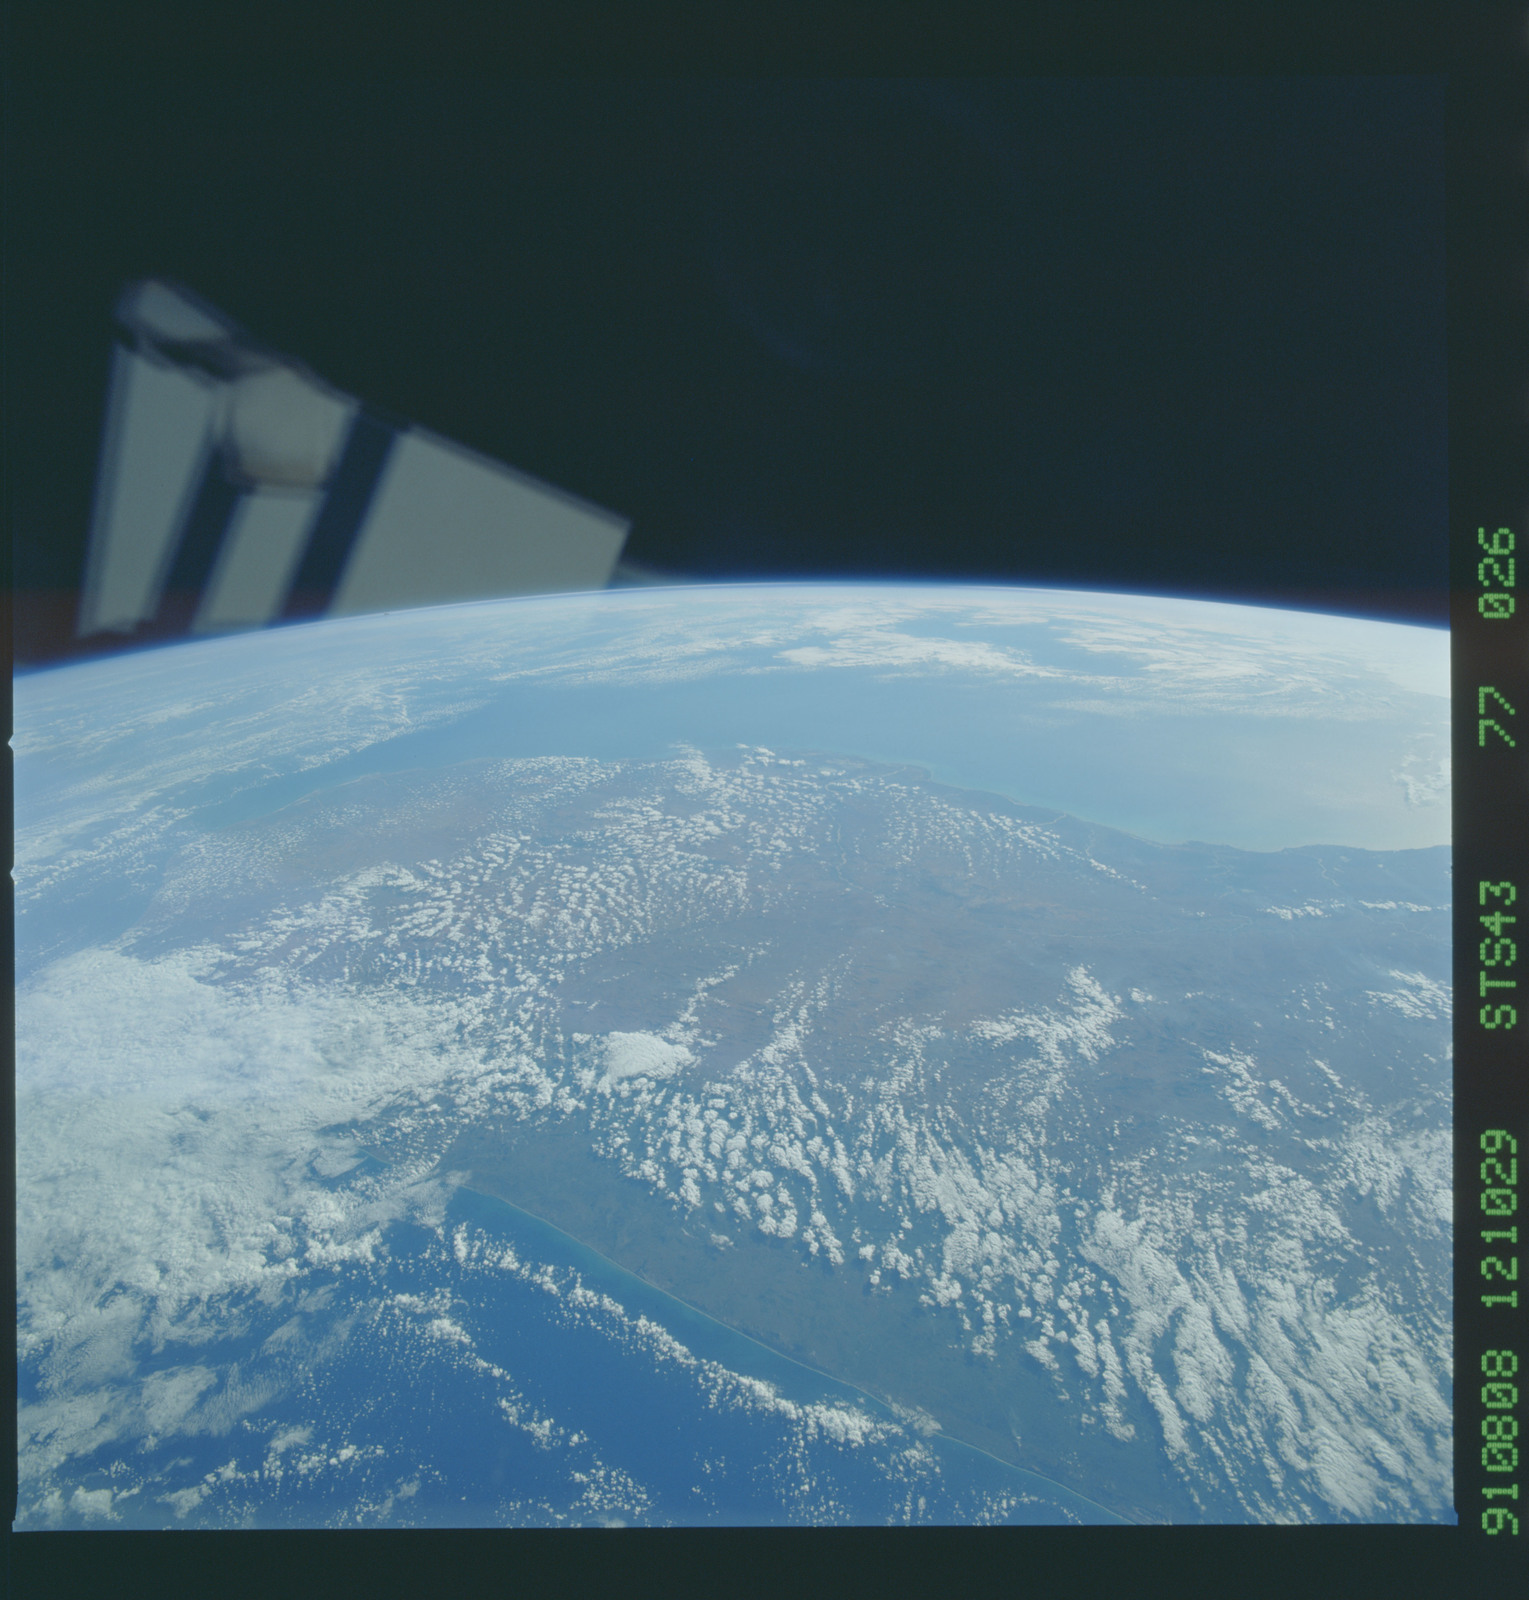 S43-77-026 - STS-043 - STS-43 earth observations